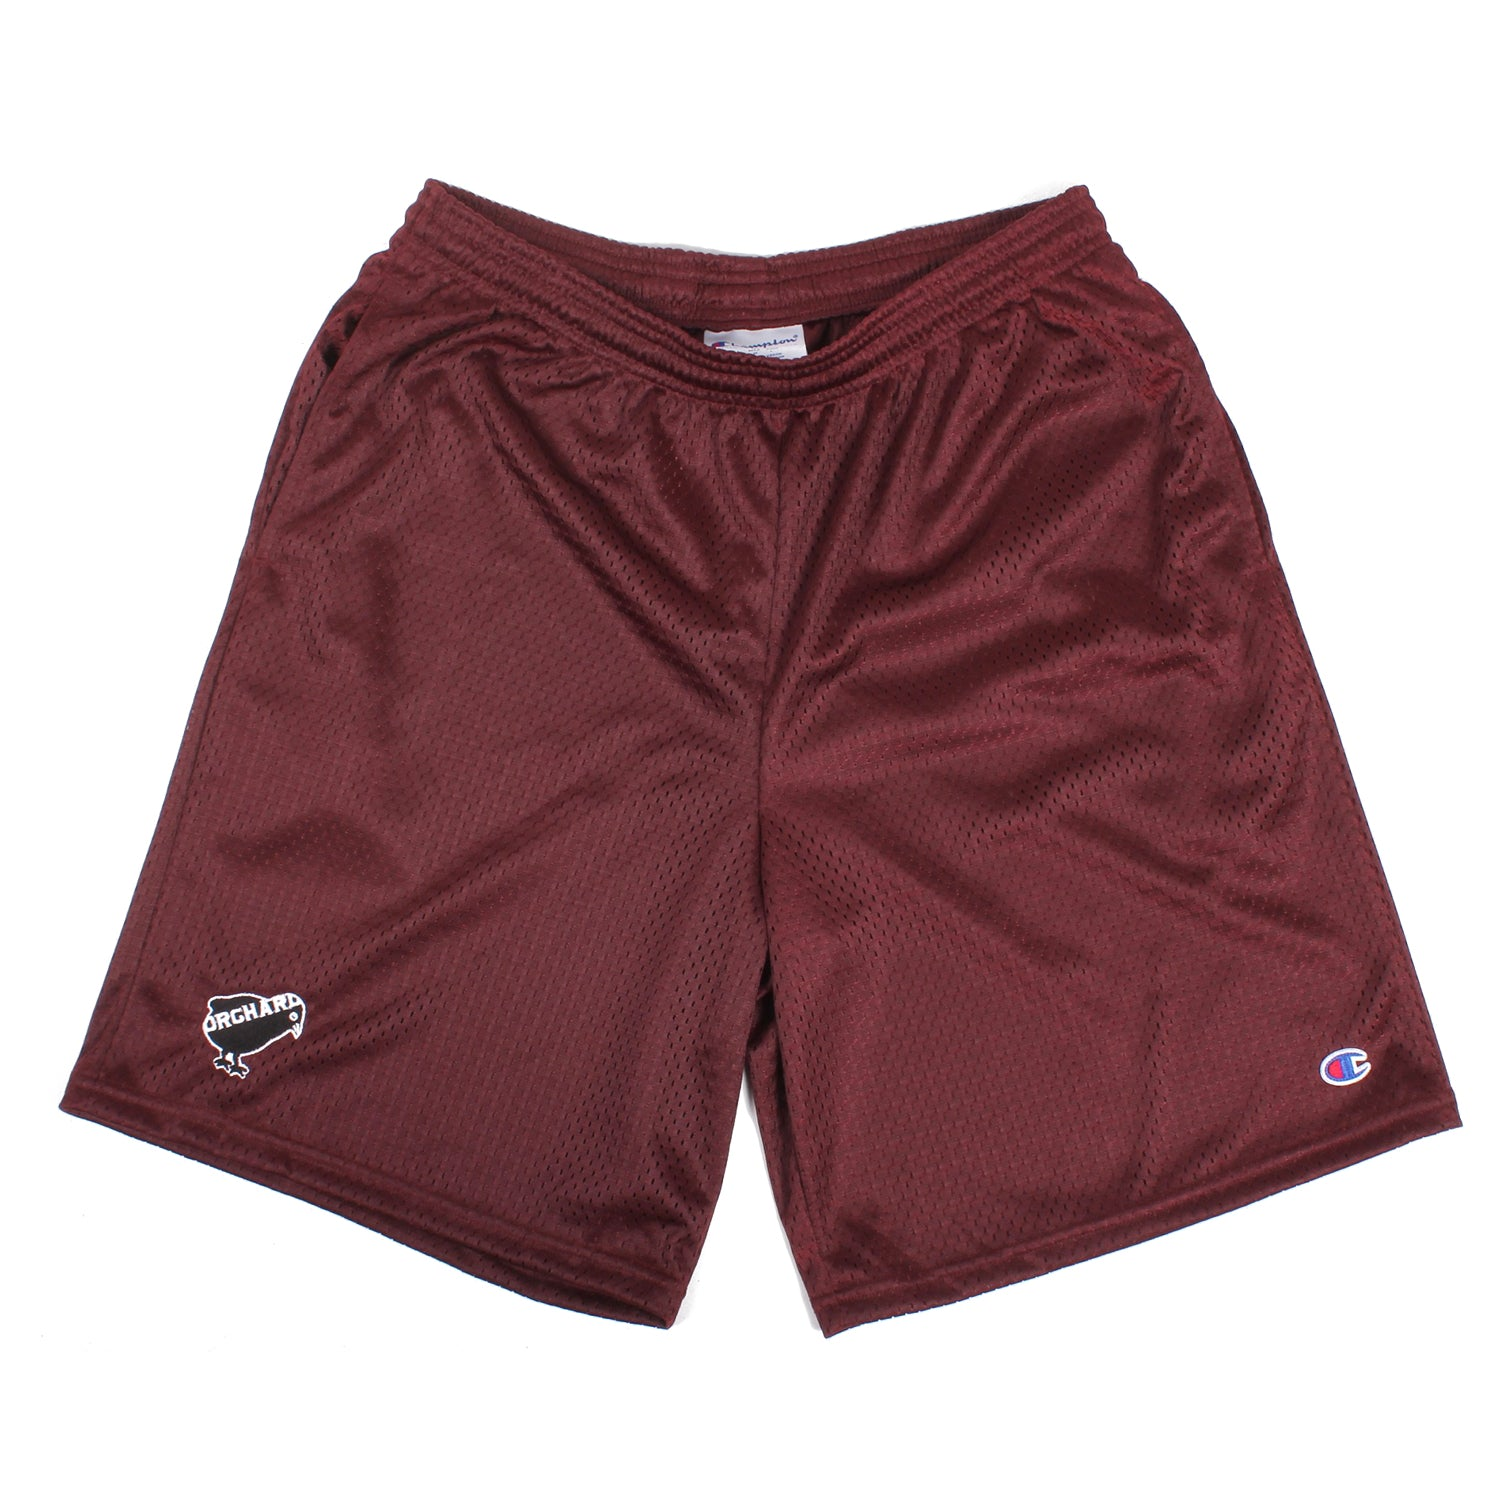 Orchard Mesh Shorts Emb. Bird Wine